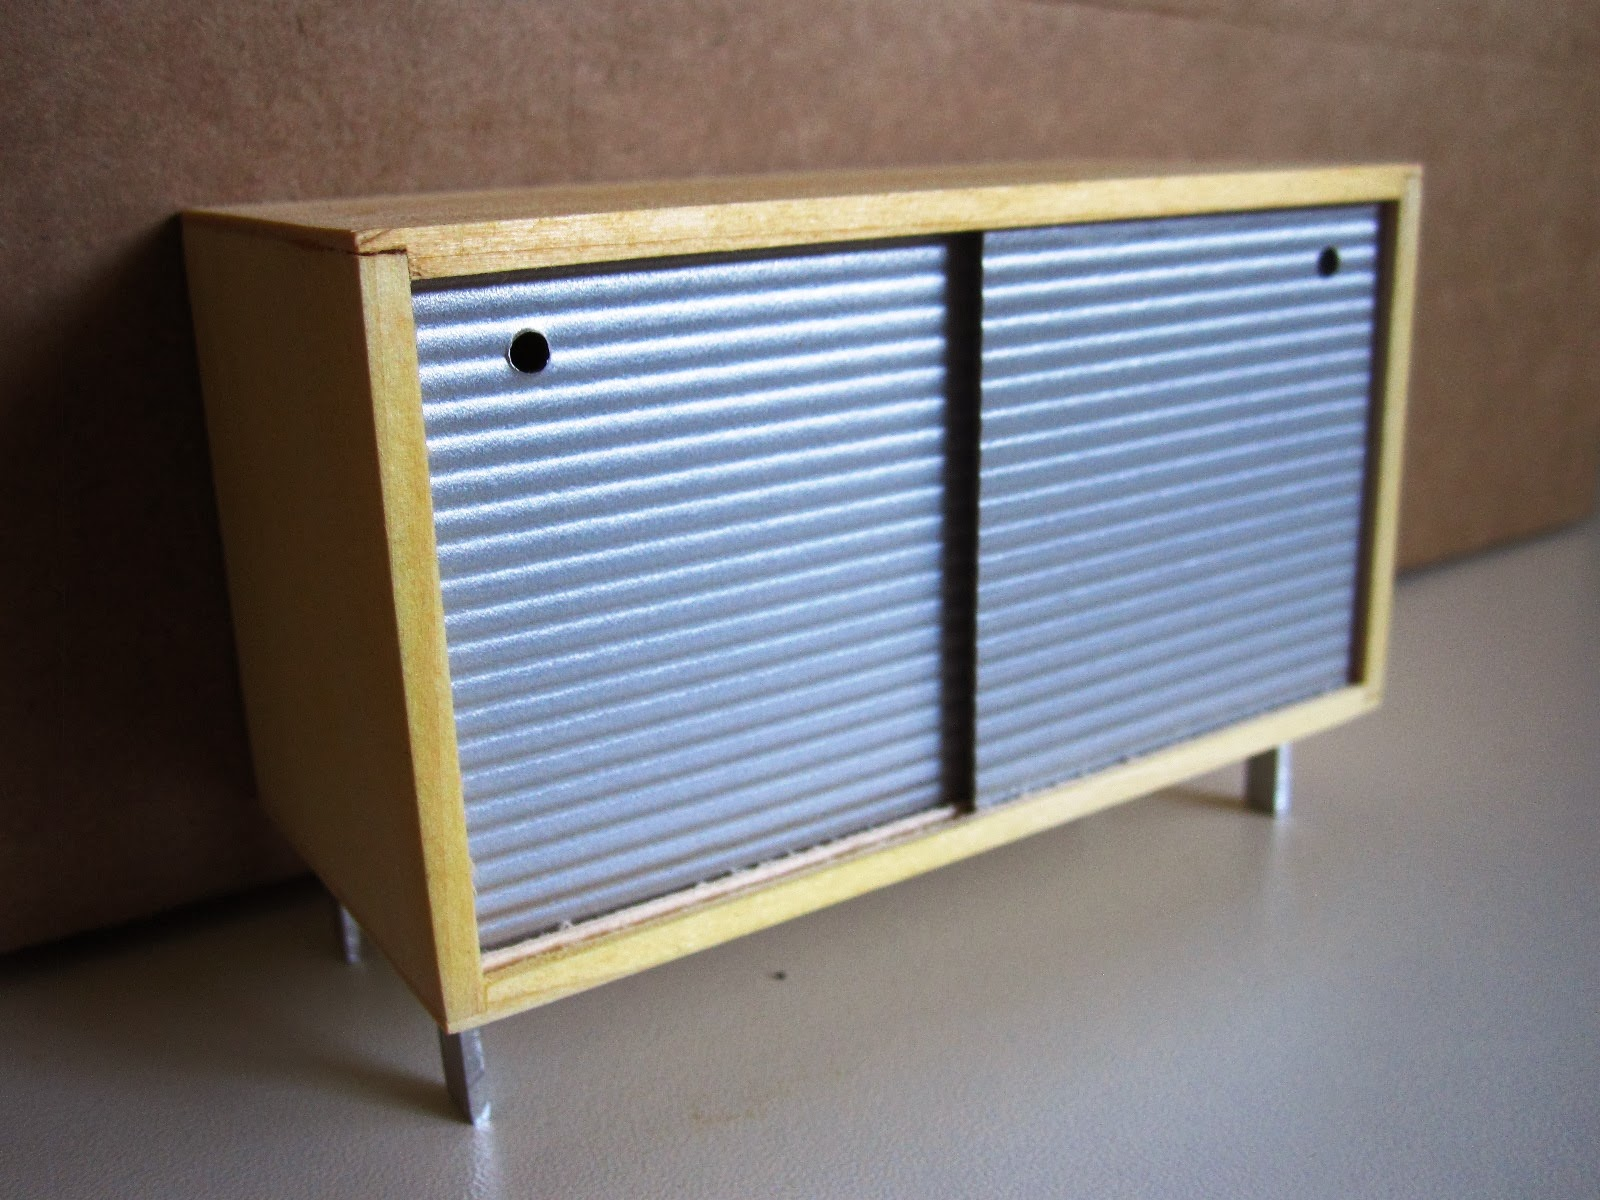 Mod Pod Miniatures' retro credenza with grey sliding doors